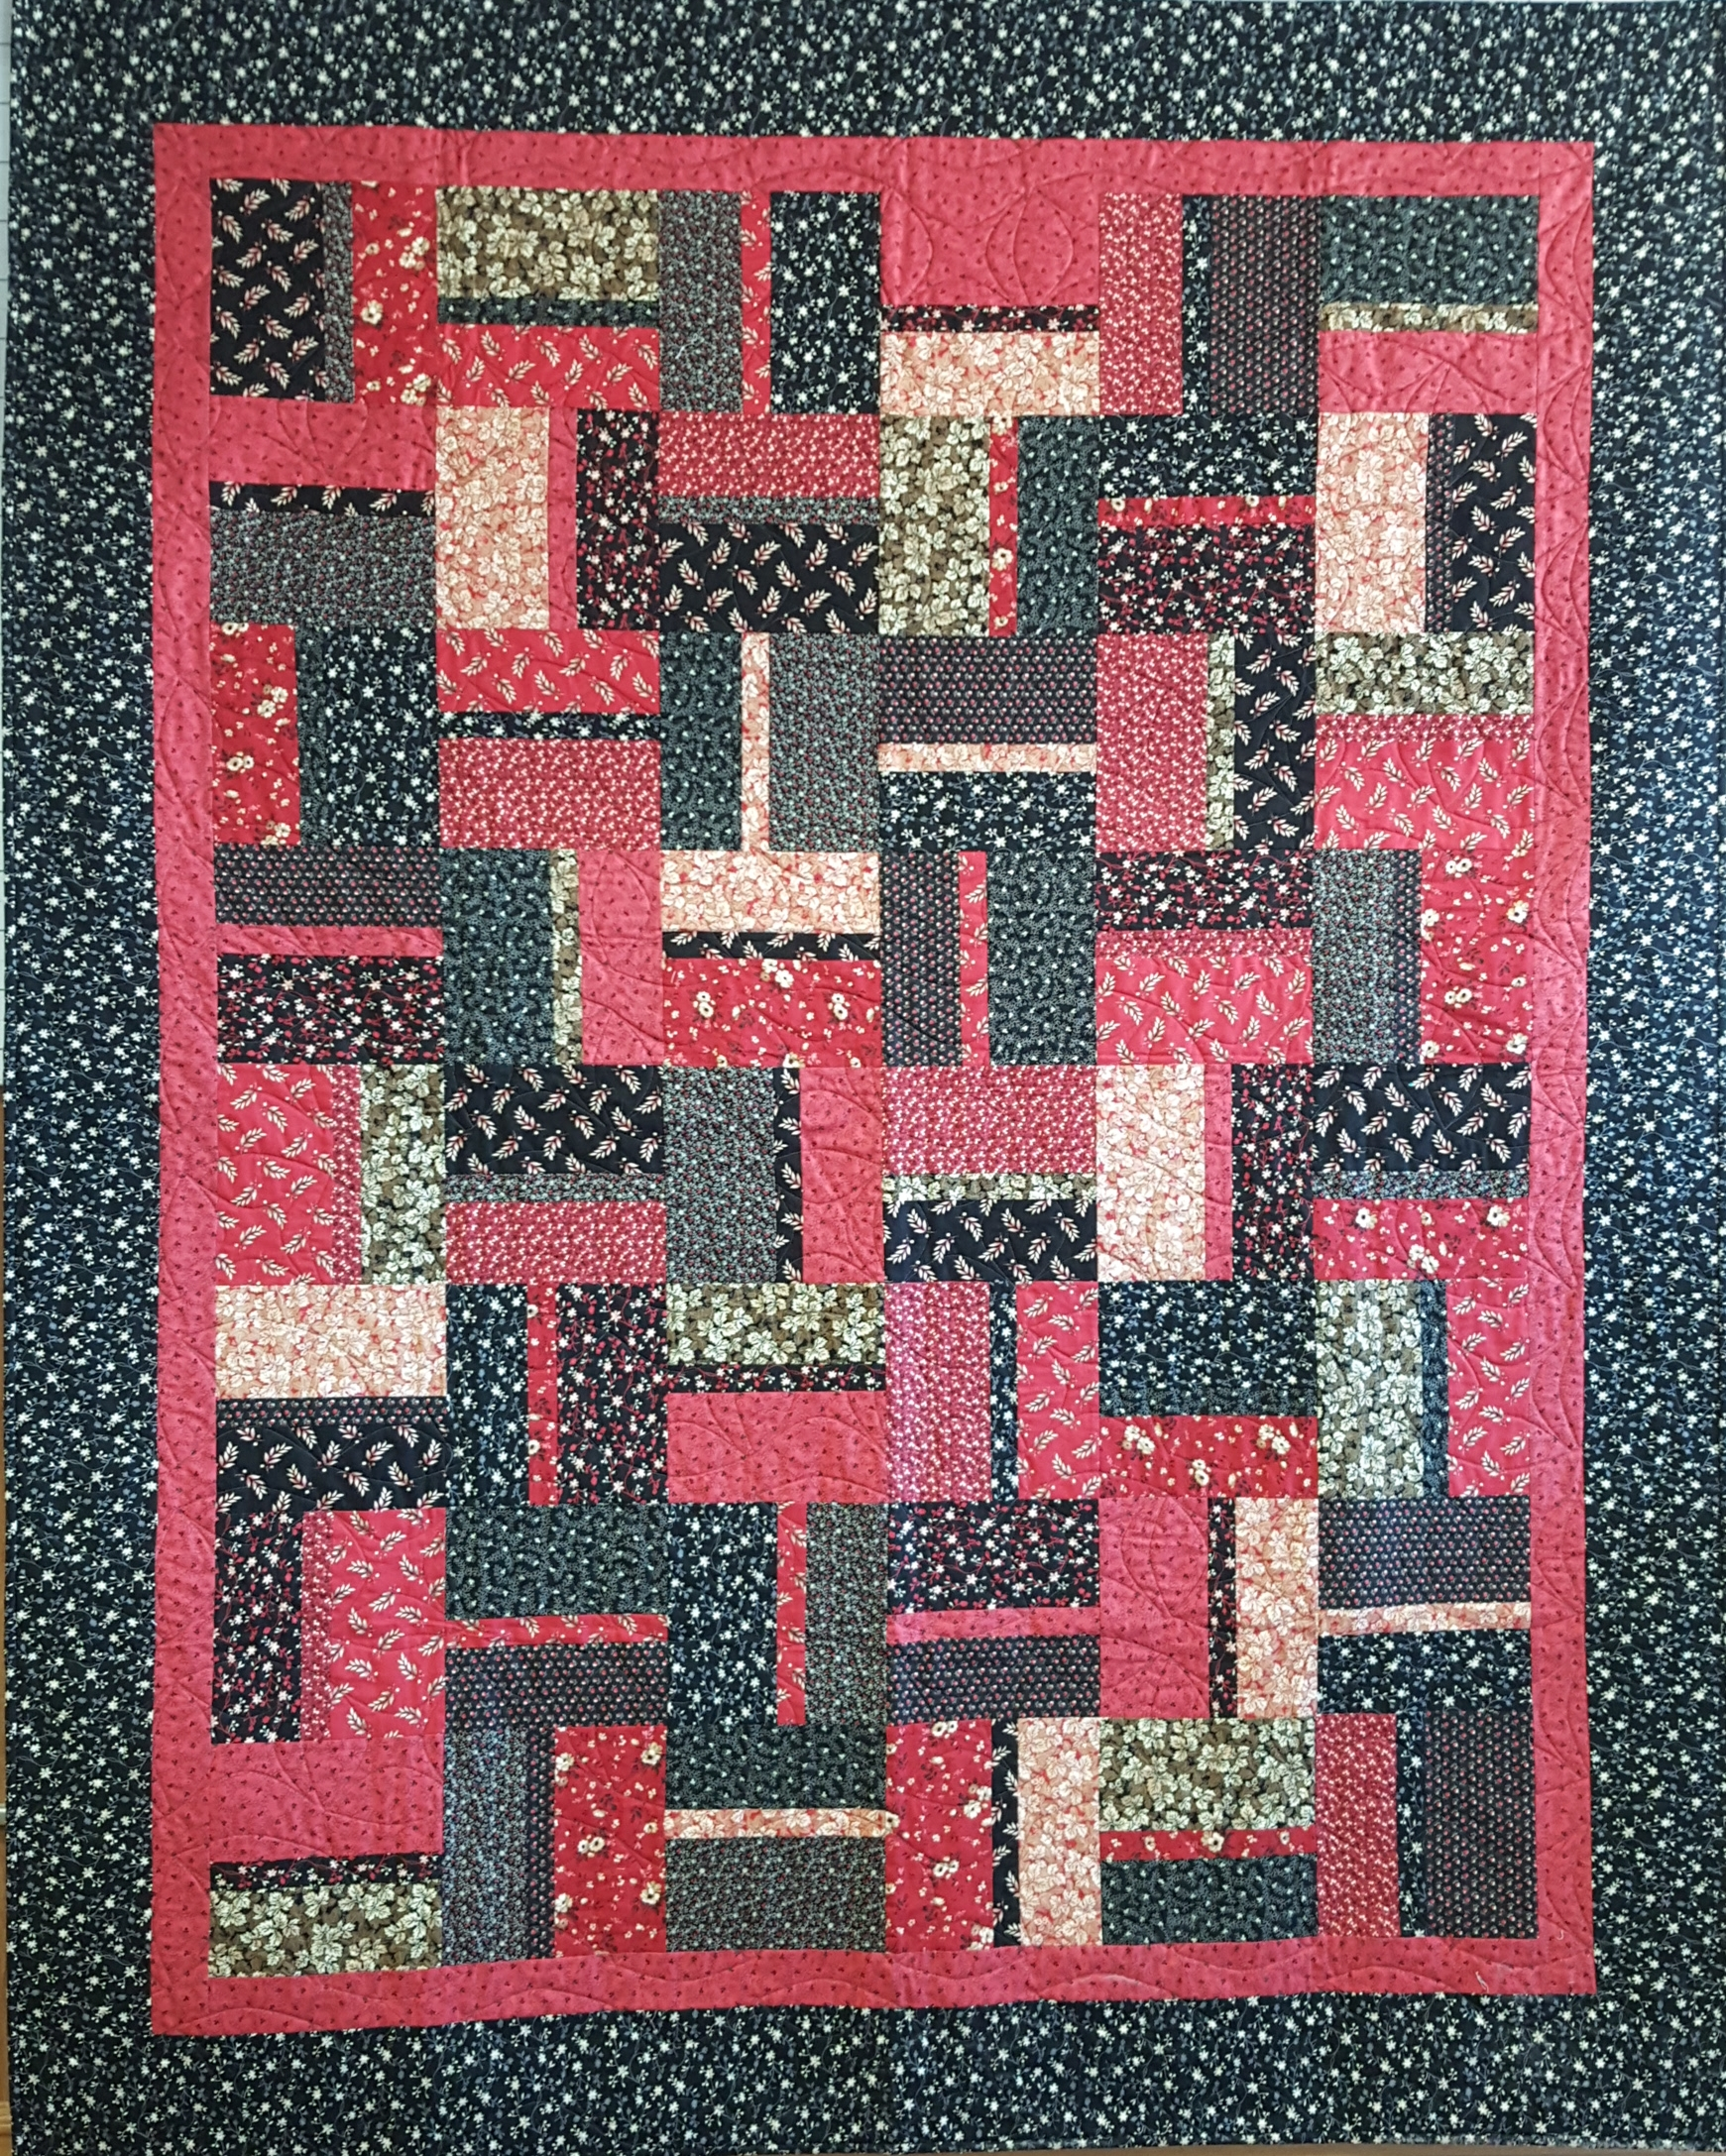 Counting Game Wisdom Quilt KIT